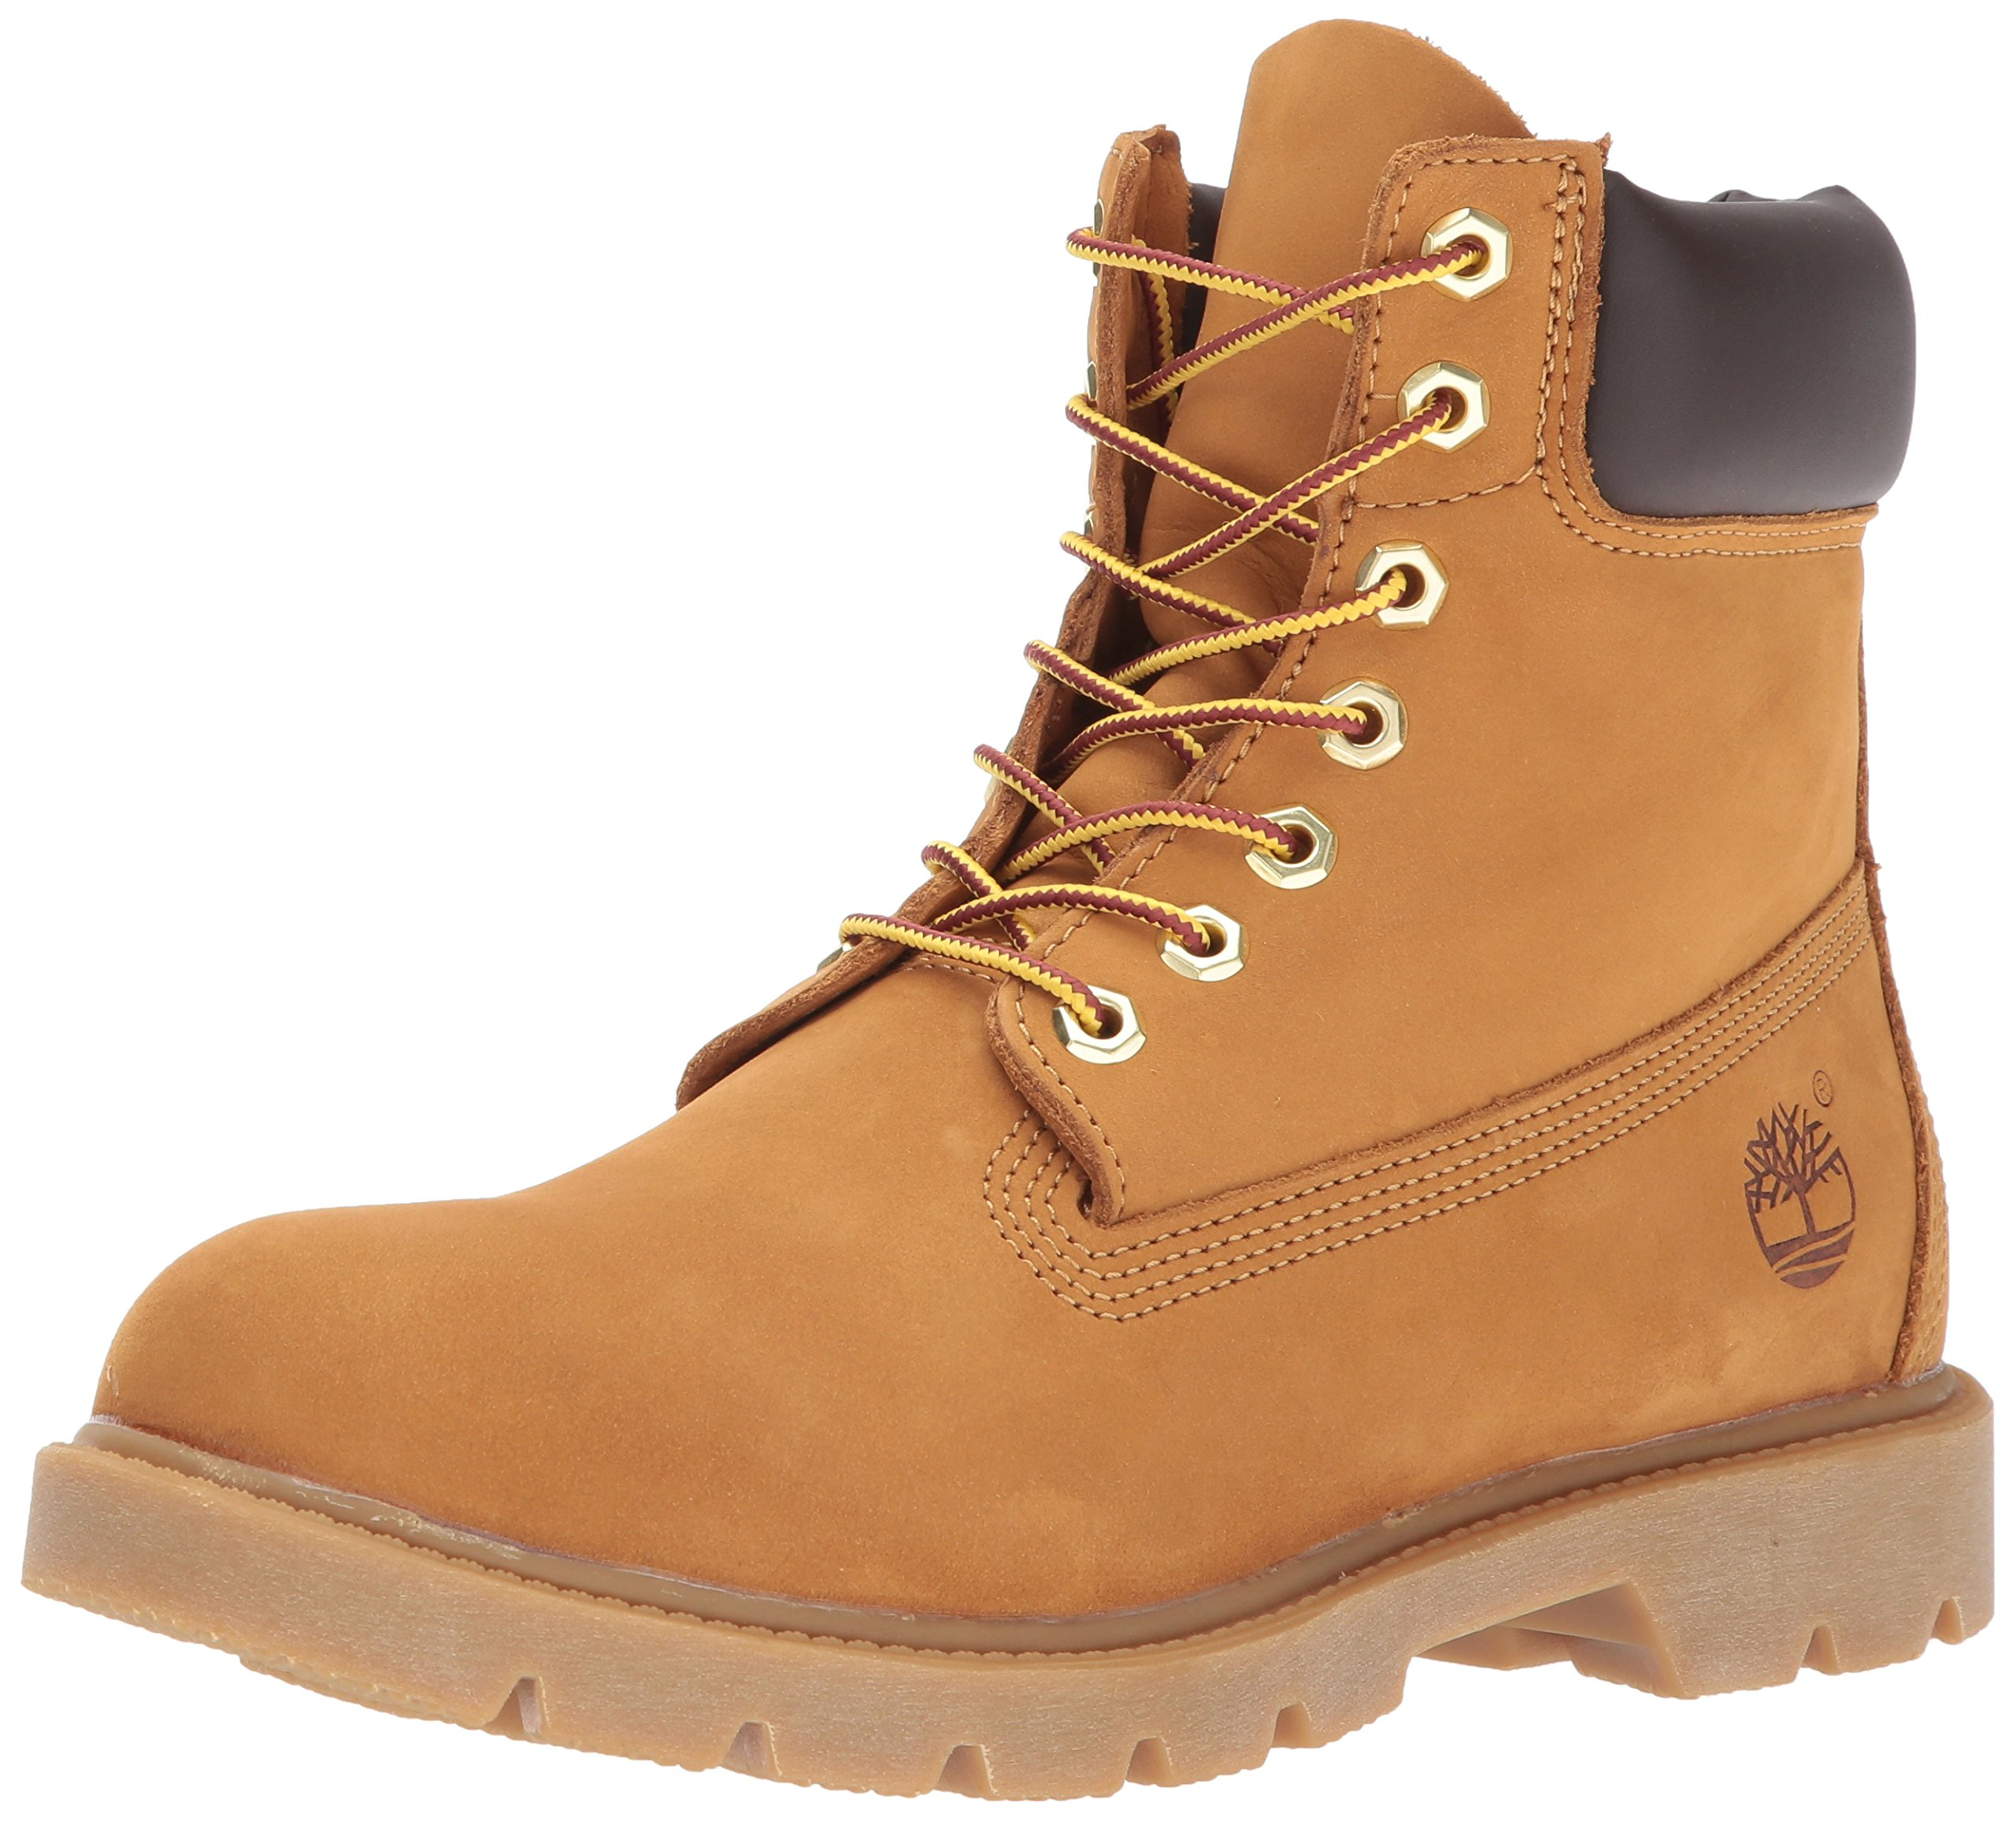 Timberland Men's 6'' Basic Contrast Collar Boot, Wheat Nubuck, 10.5 M US by Timberland